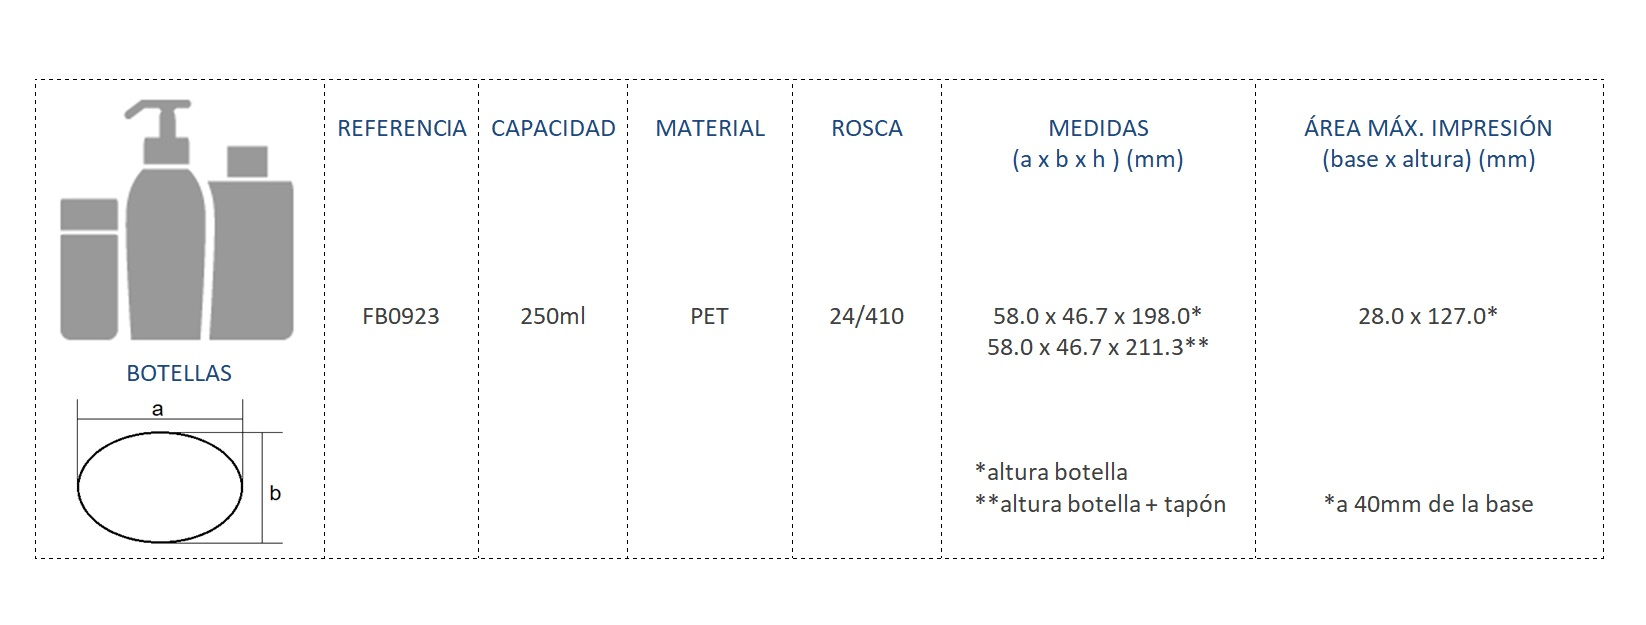 Cuadro de materiales botella FB0923